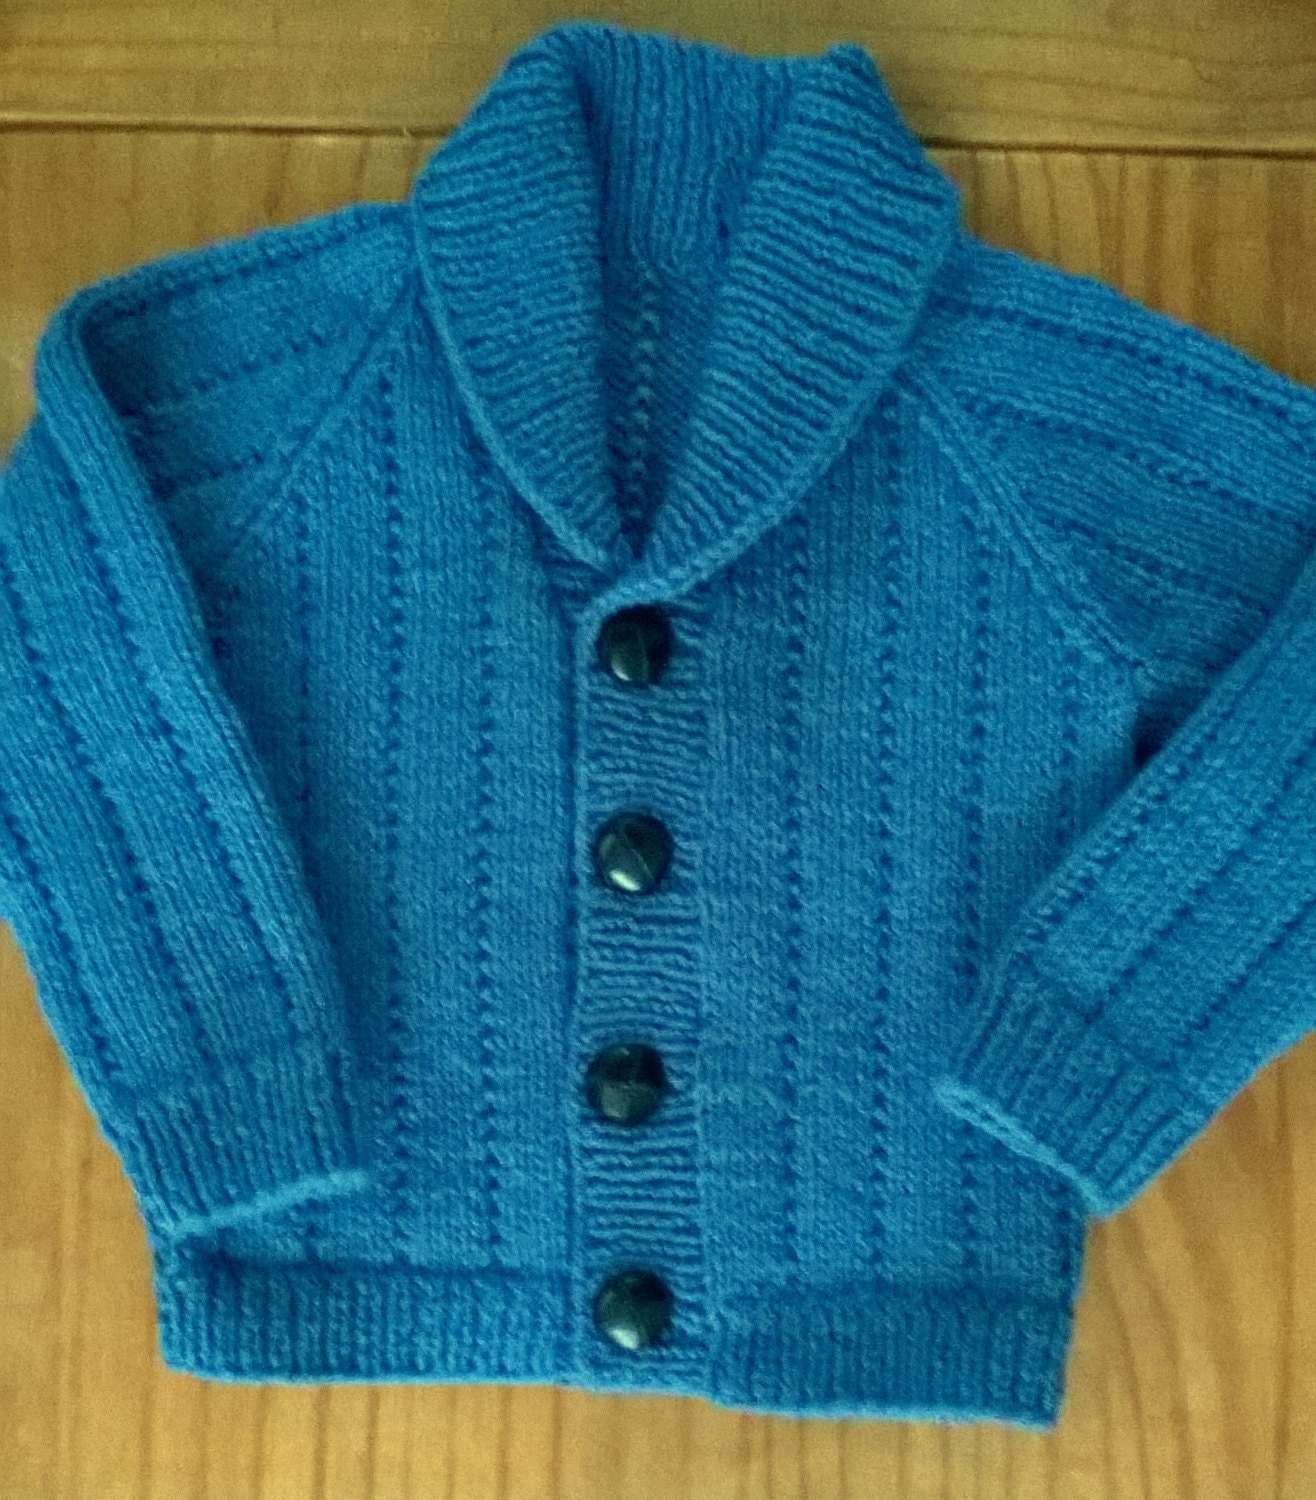 Baby Shawl Collar Knitting Pattern : Baby Boys Hand Knitted Shawl Collar Cardigan Blue 1-2 by 4tinytotz